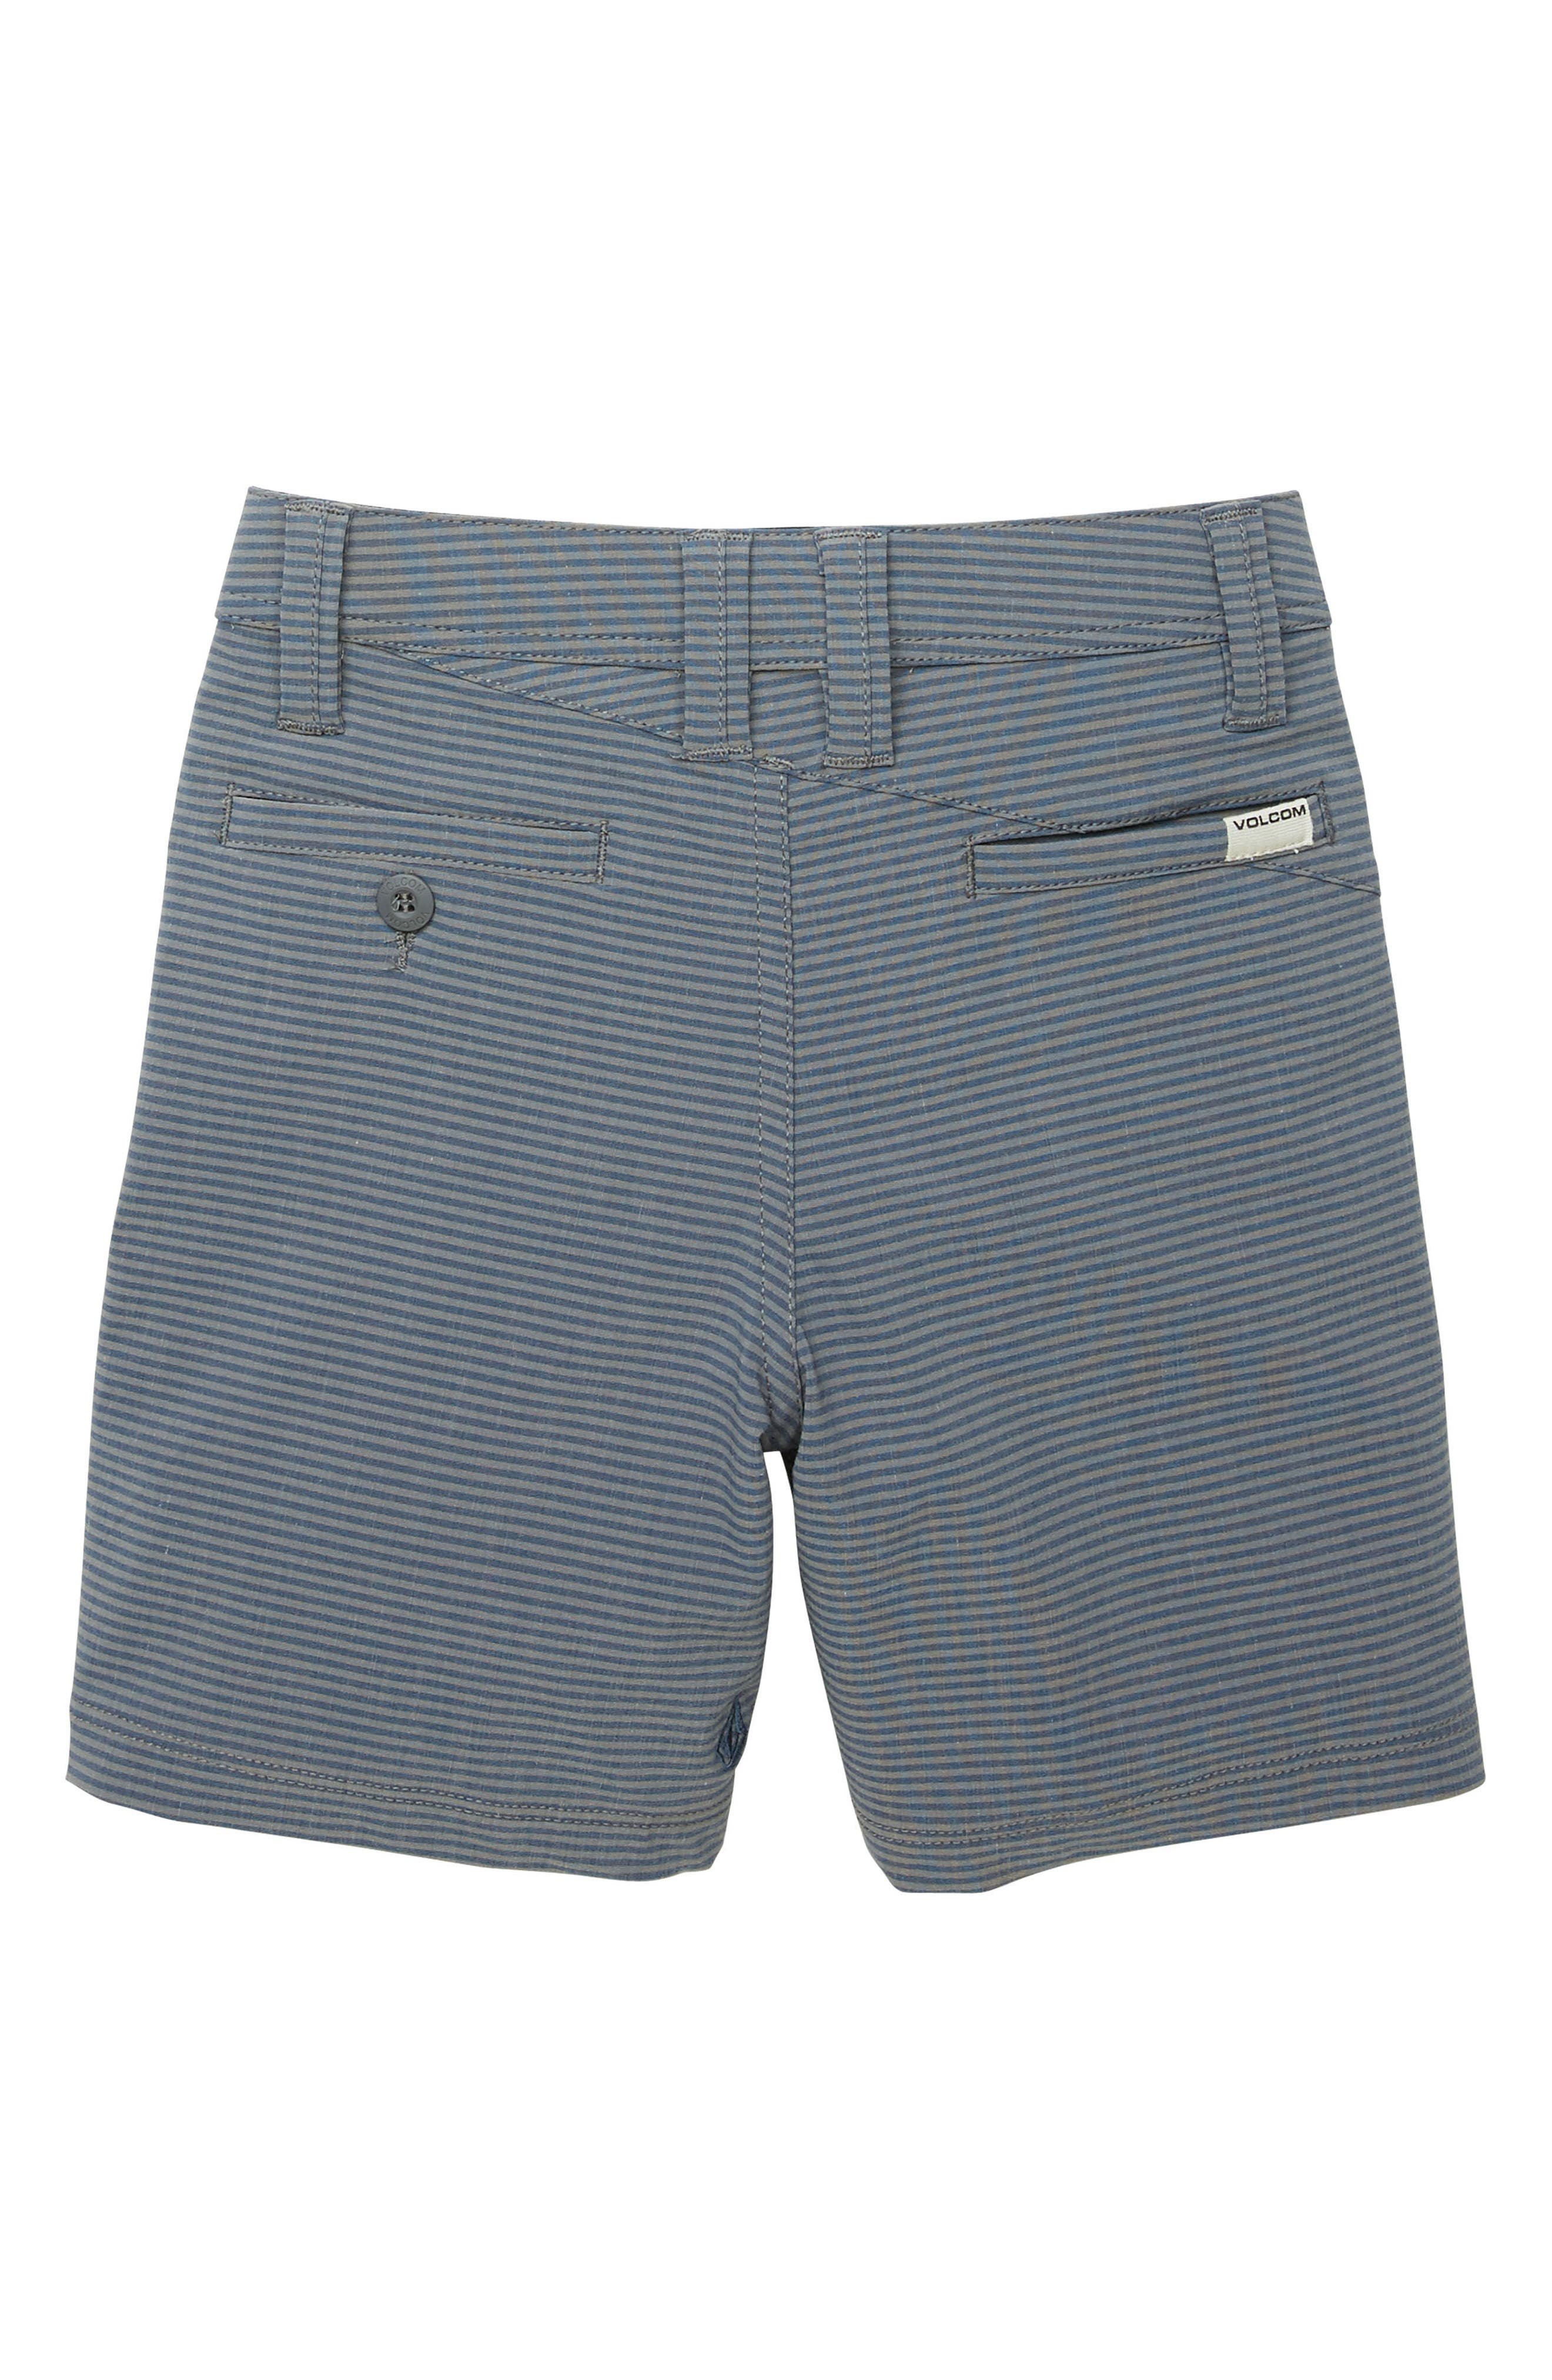 Frickin Surf N' Turf Mix Hybrid Shorts,                             Alternate thumbnail 2, color,                             Deep Blue